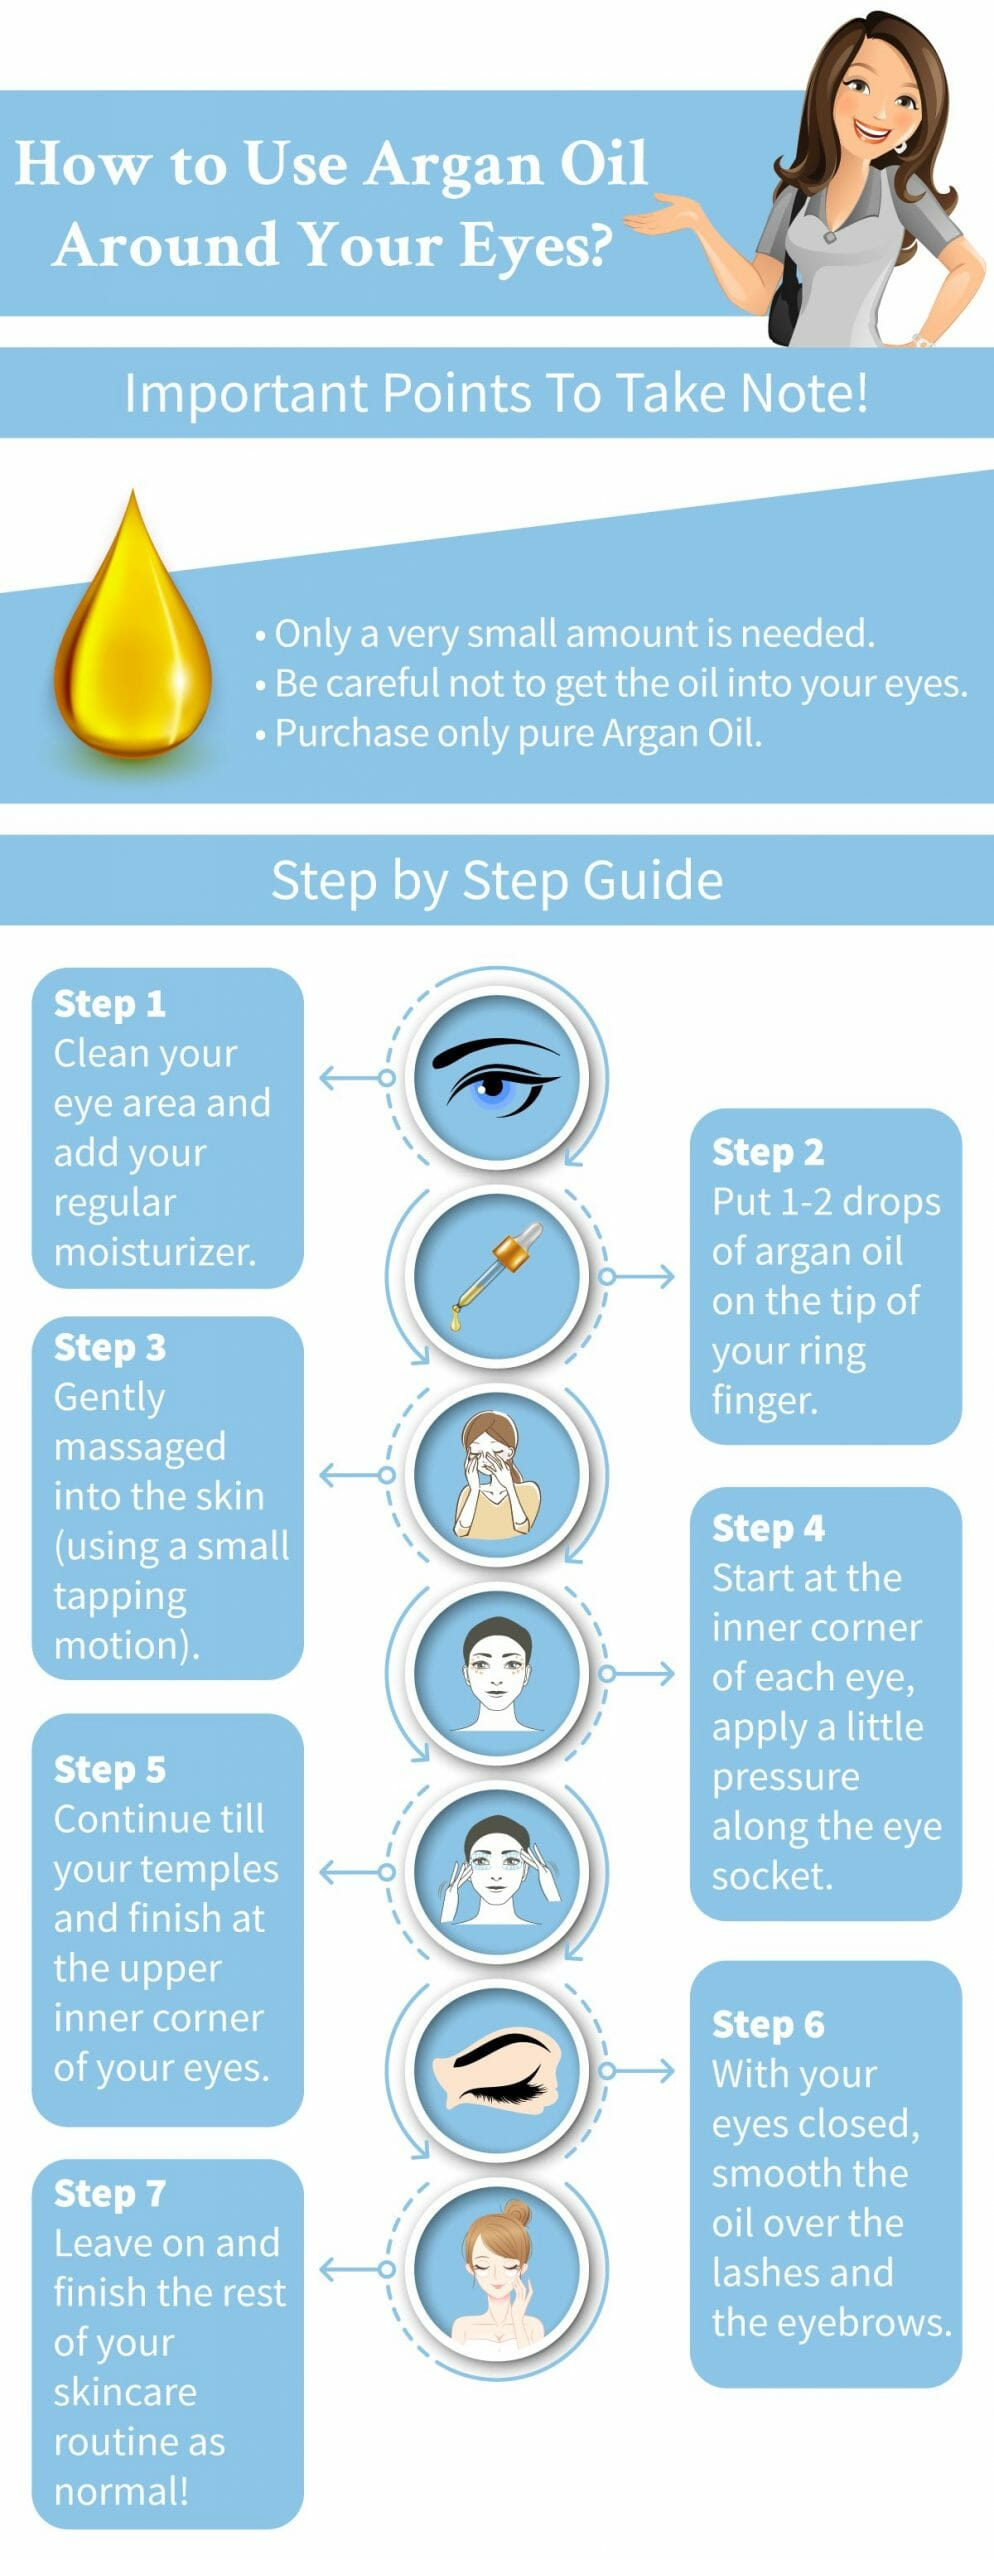 argan oil for eyes infographic